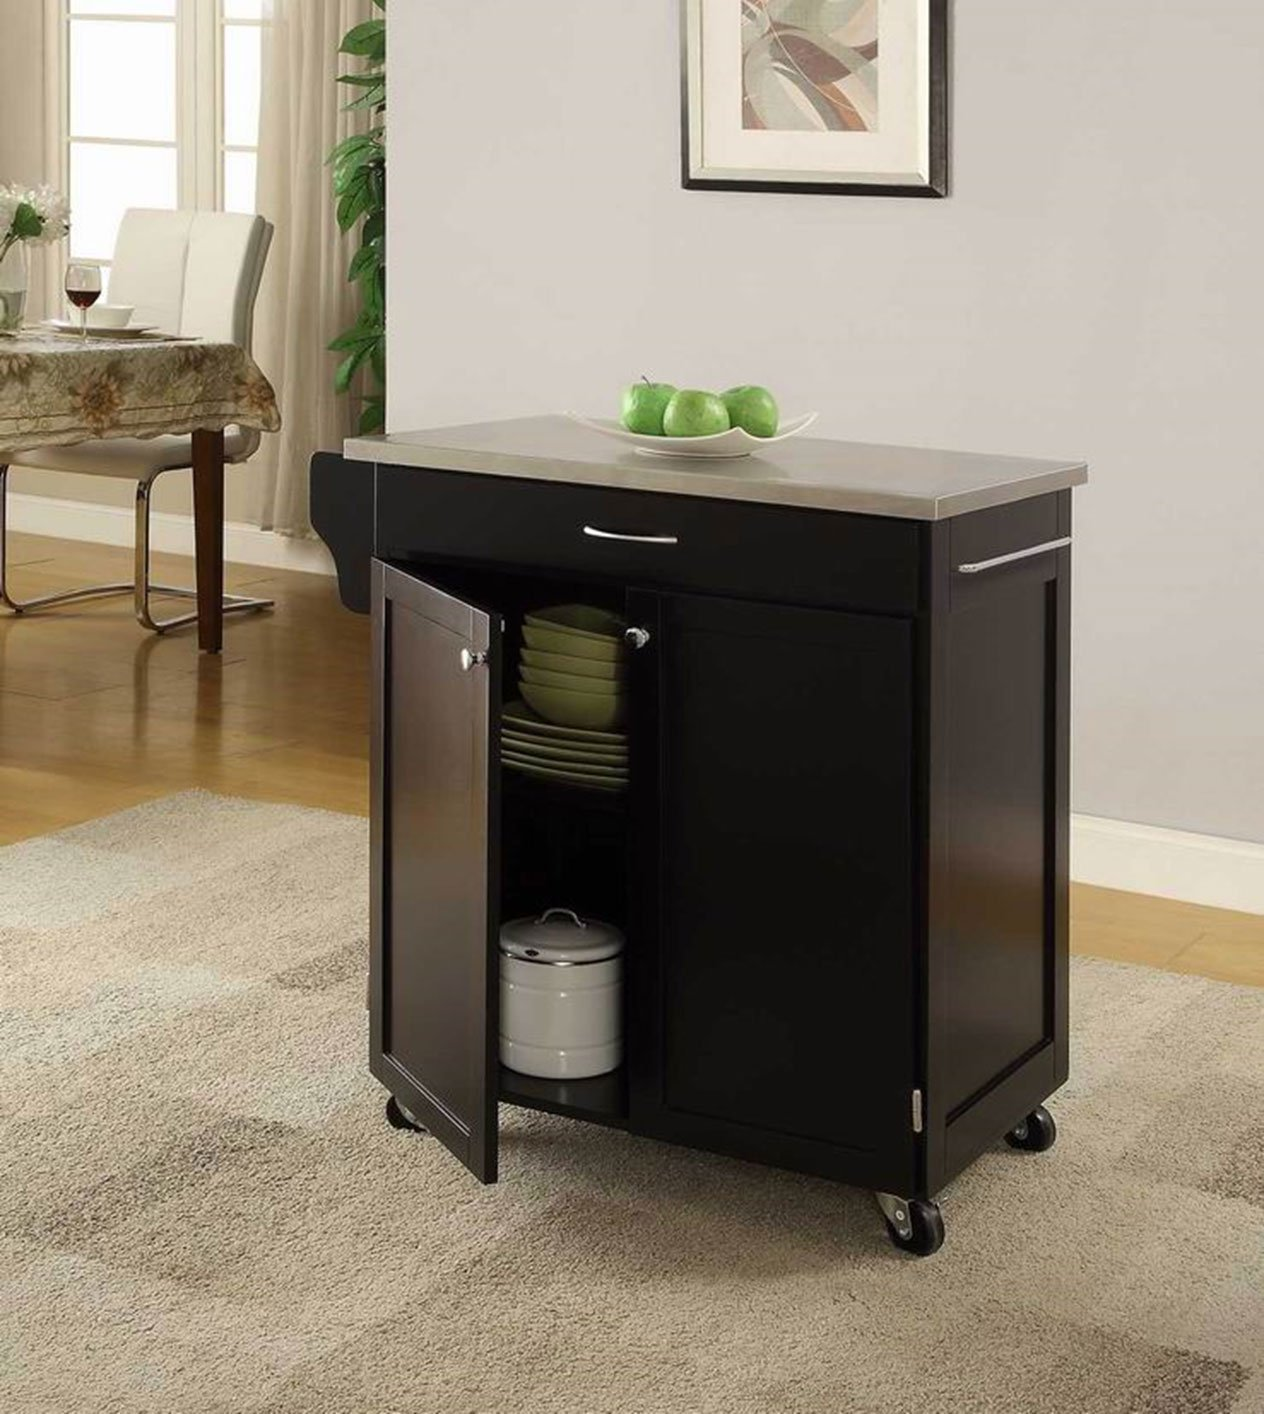 "LIFE Home Oliver and Smith - Nashville Collection - Mobile Kitchen Island Cart on Wheels - Black - Stainless Steel Top - 32"" W x 19"" L x 36"" H 102066-01blk"